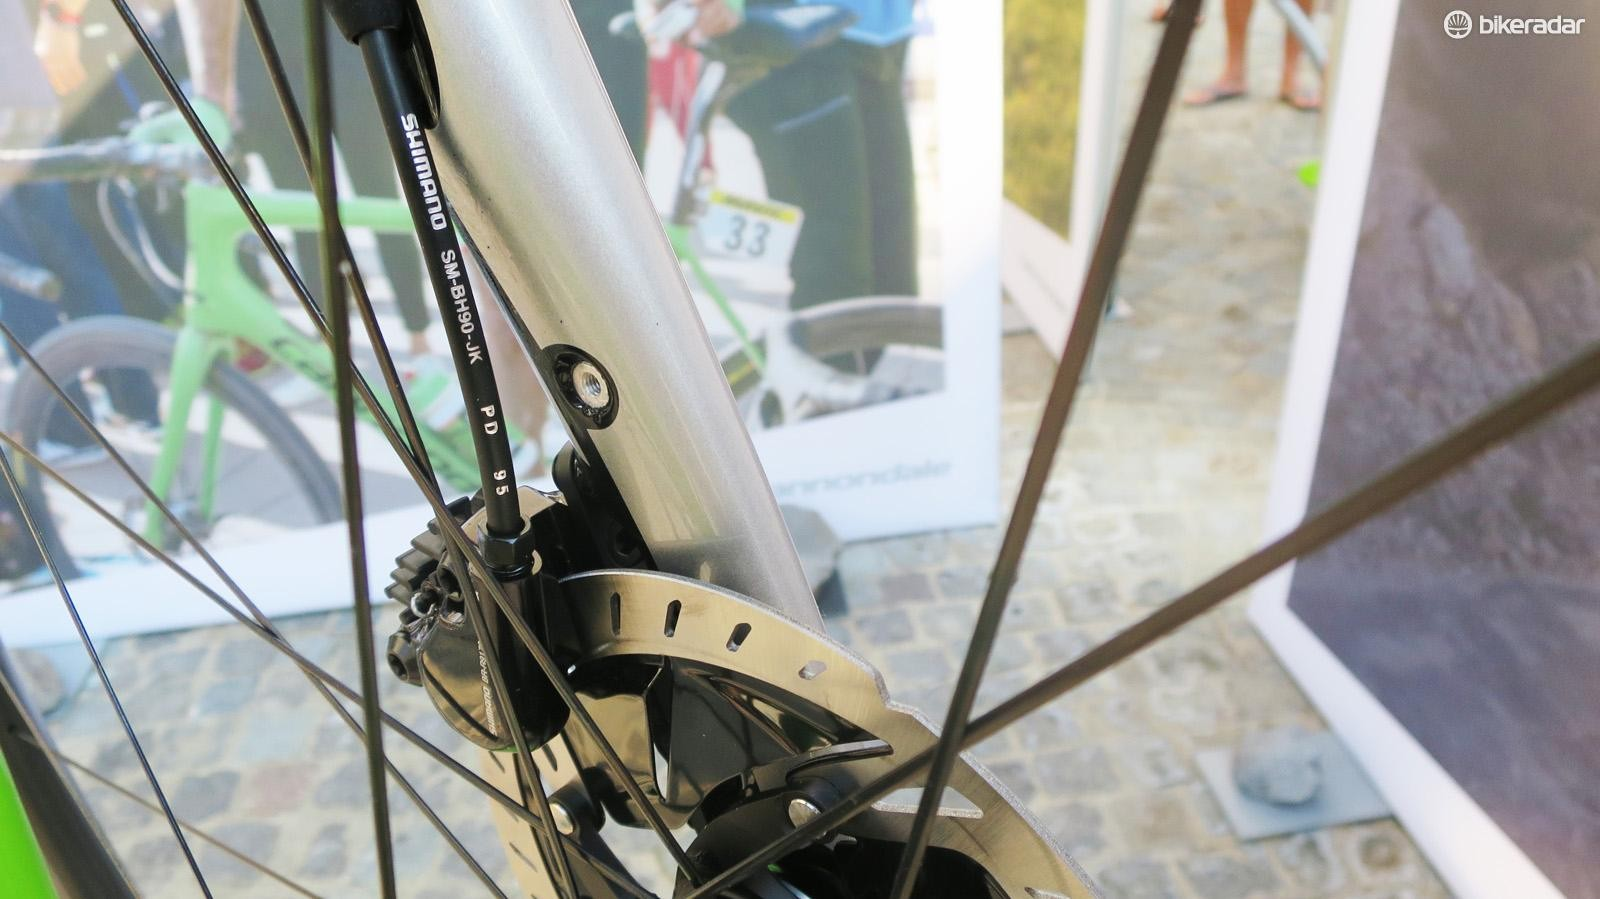 The Synapse fork neatly hides proper fender/mudguard mounts in the fork